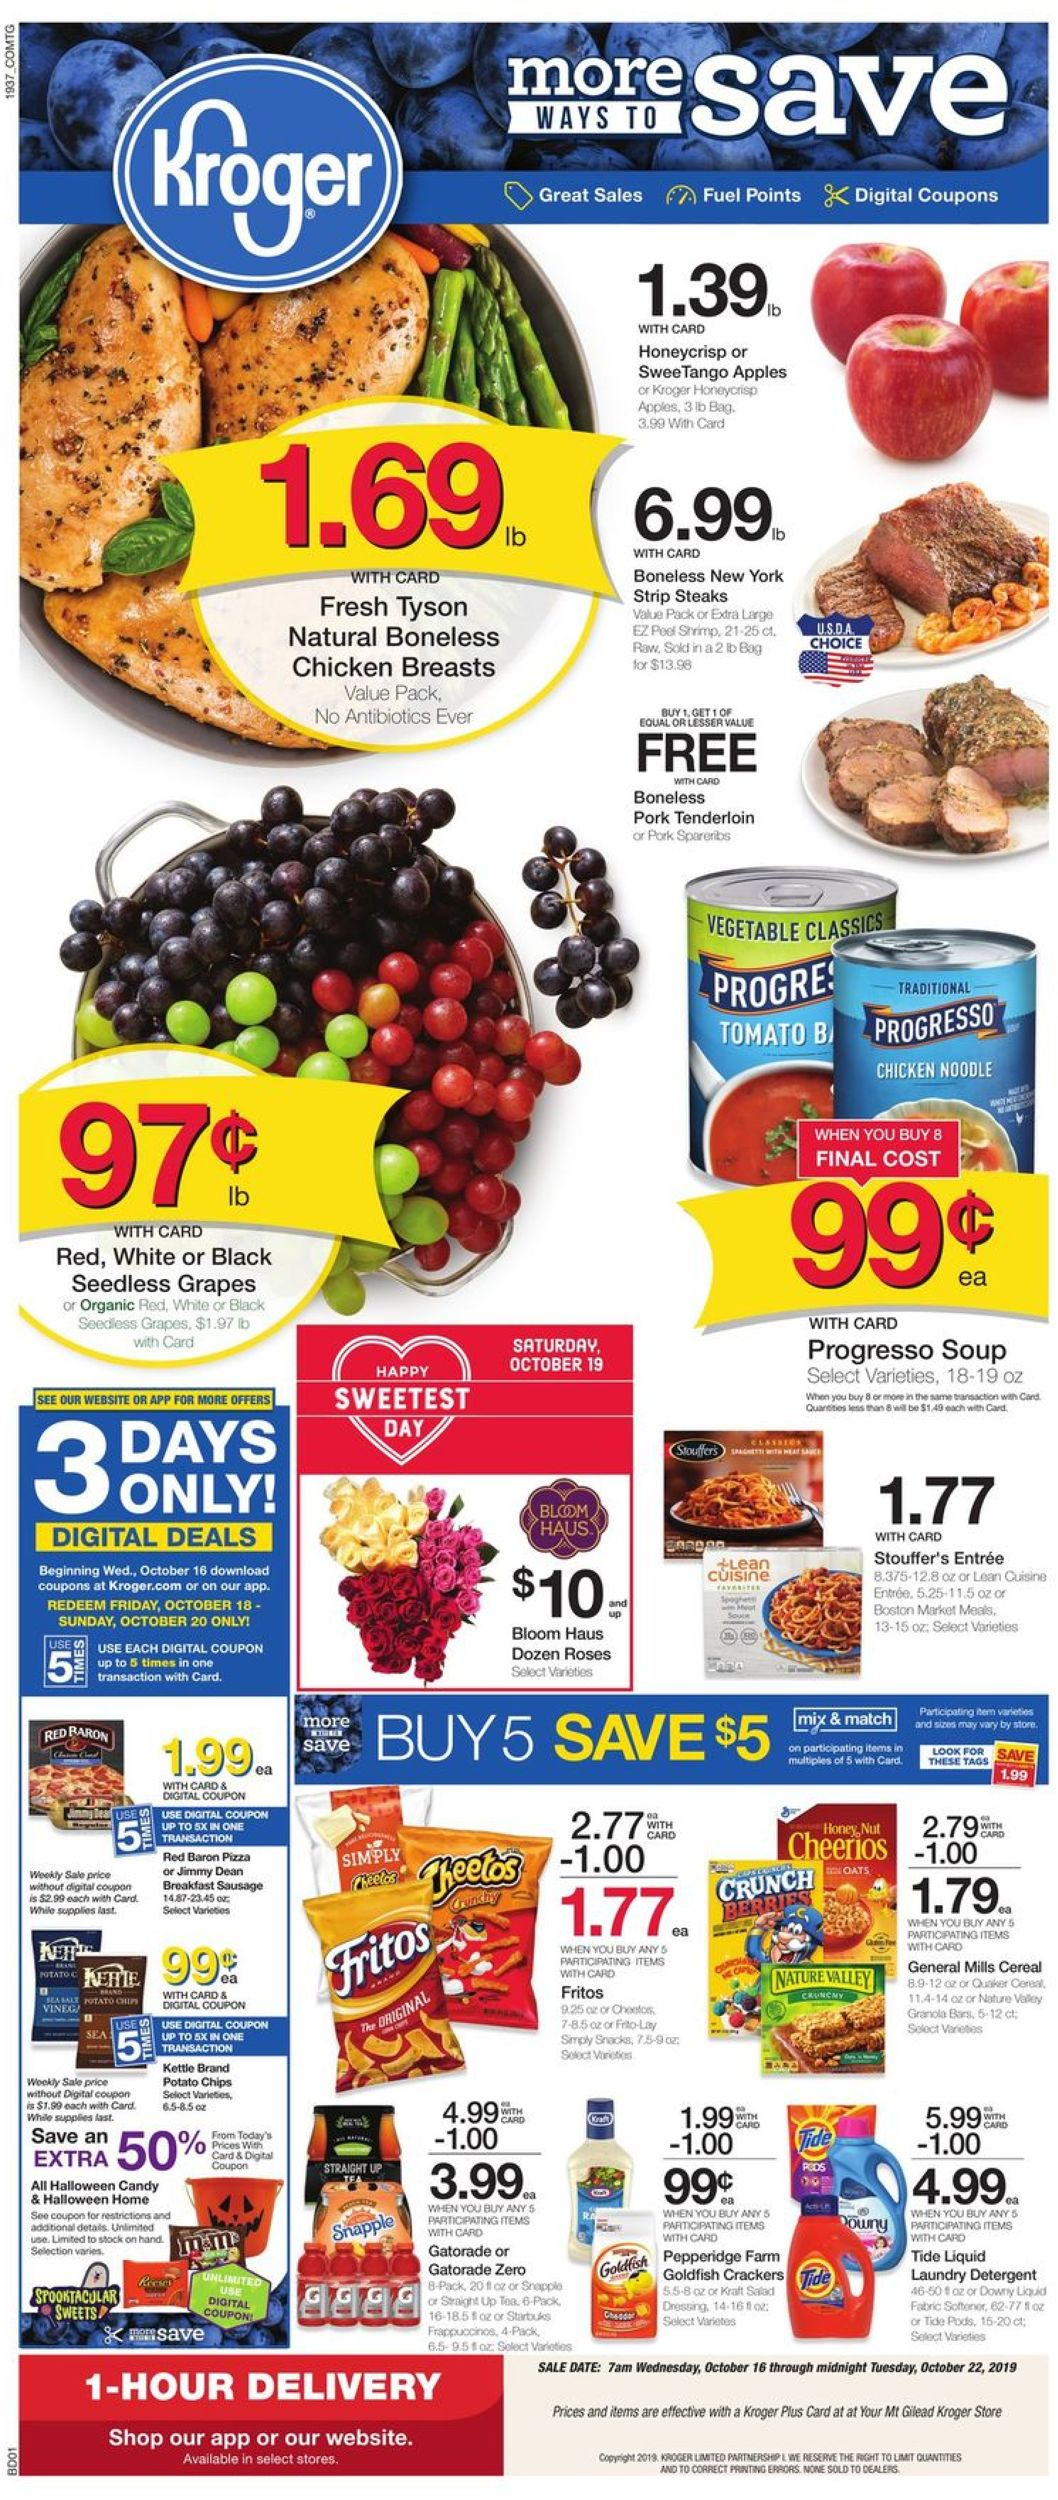 Kroger Christmas Hours 2019.Kroger Current Weekly Ad 10 16 10 22 2019 Frequent Ads Com